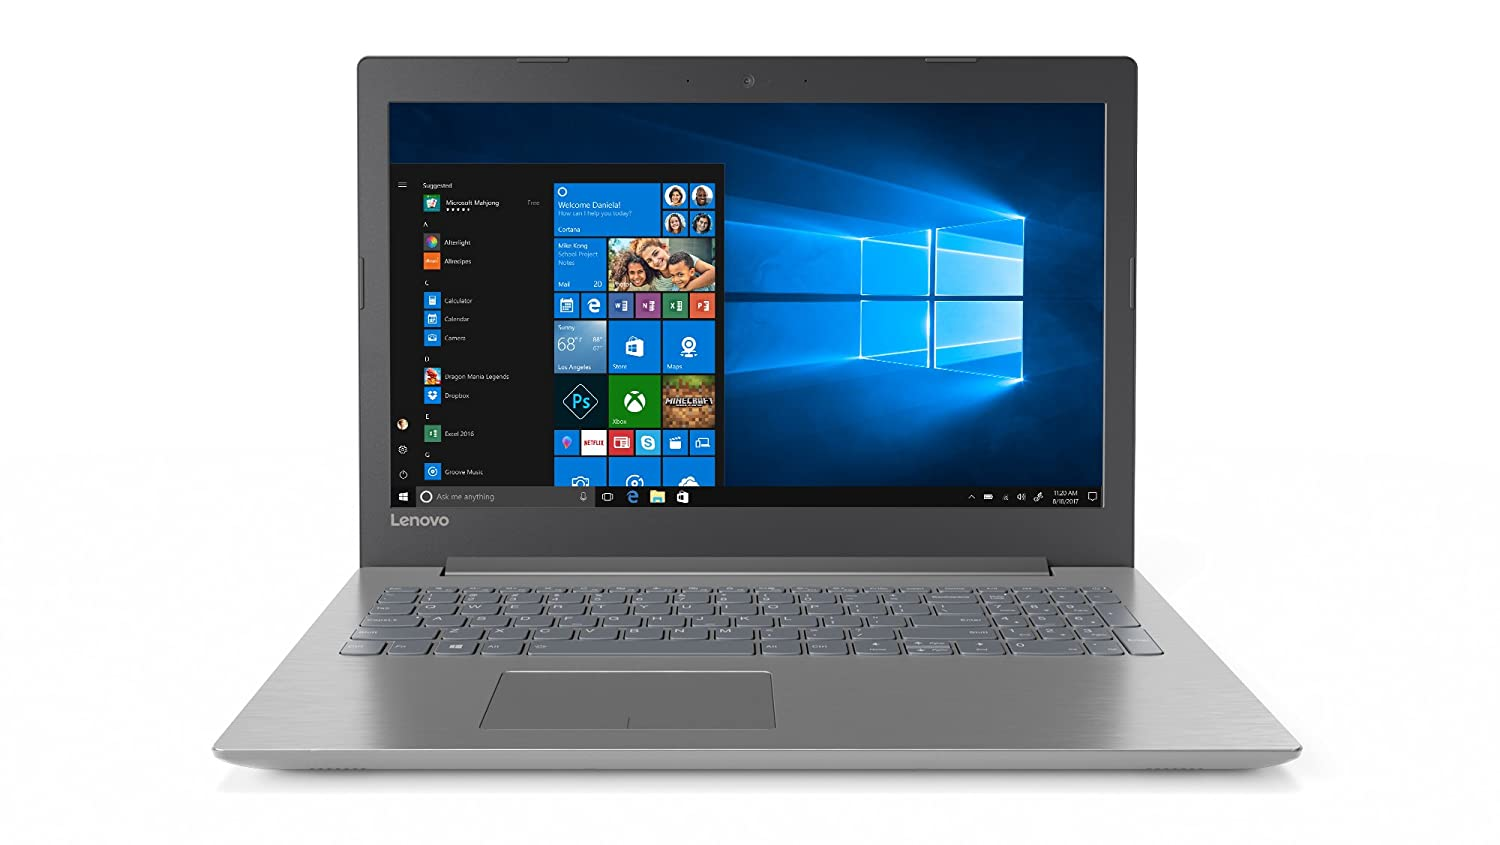 Buy Lenovo 80xl040xin 156 Inch Laptop Core I5 7200uh 8gb 2tb A328 4gb Black Windows 10 Home 64 Bit Dedicated Graphics Online At Low Prices In India